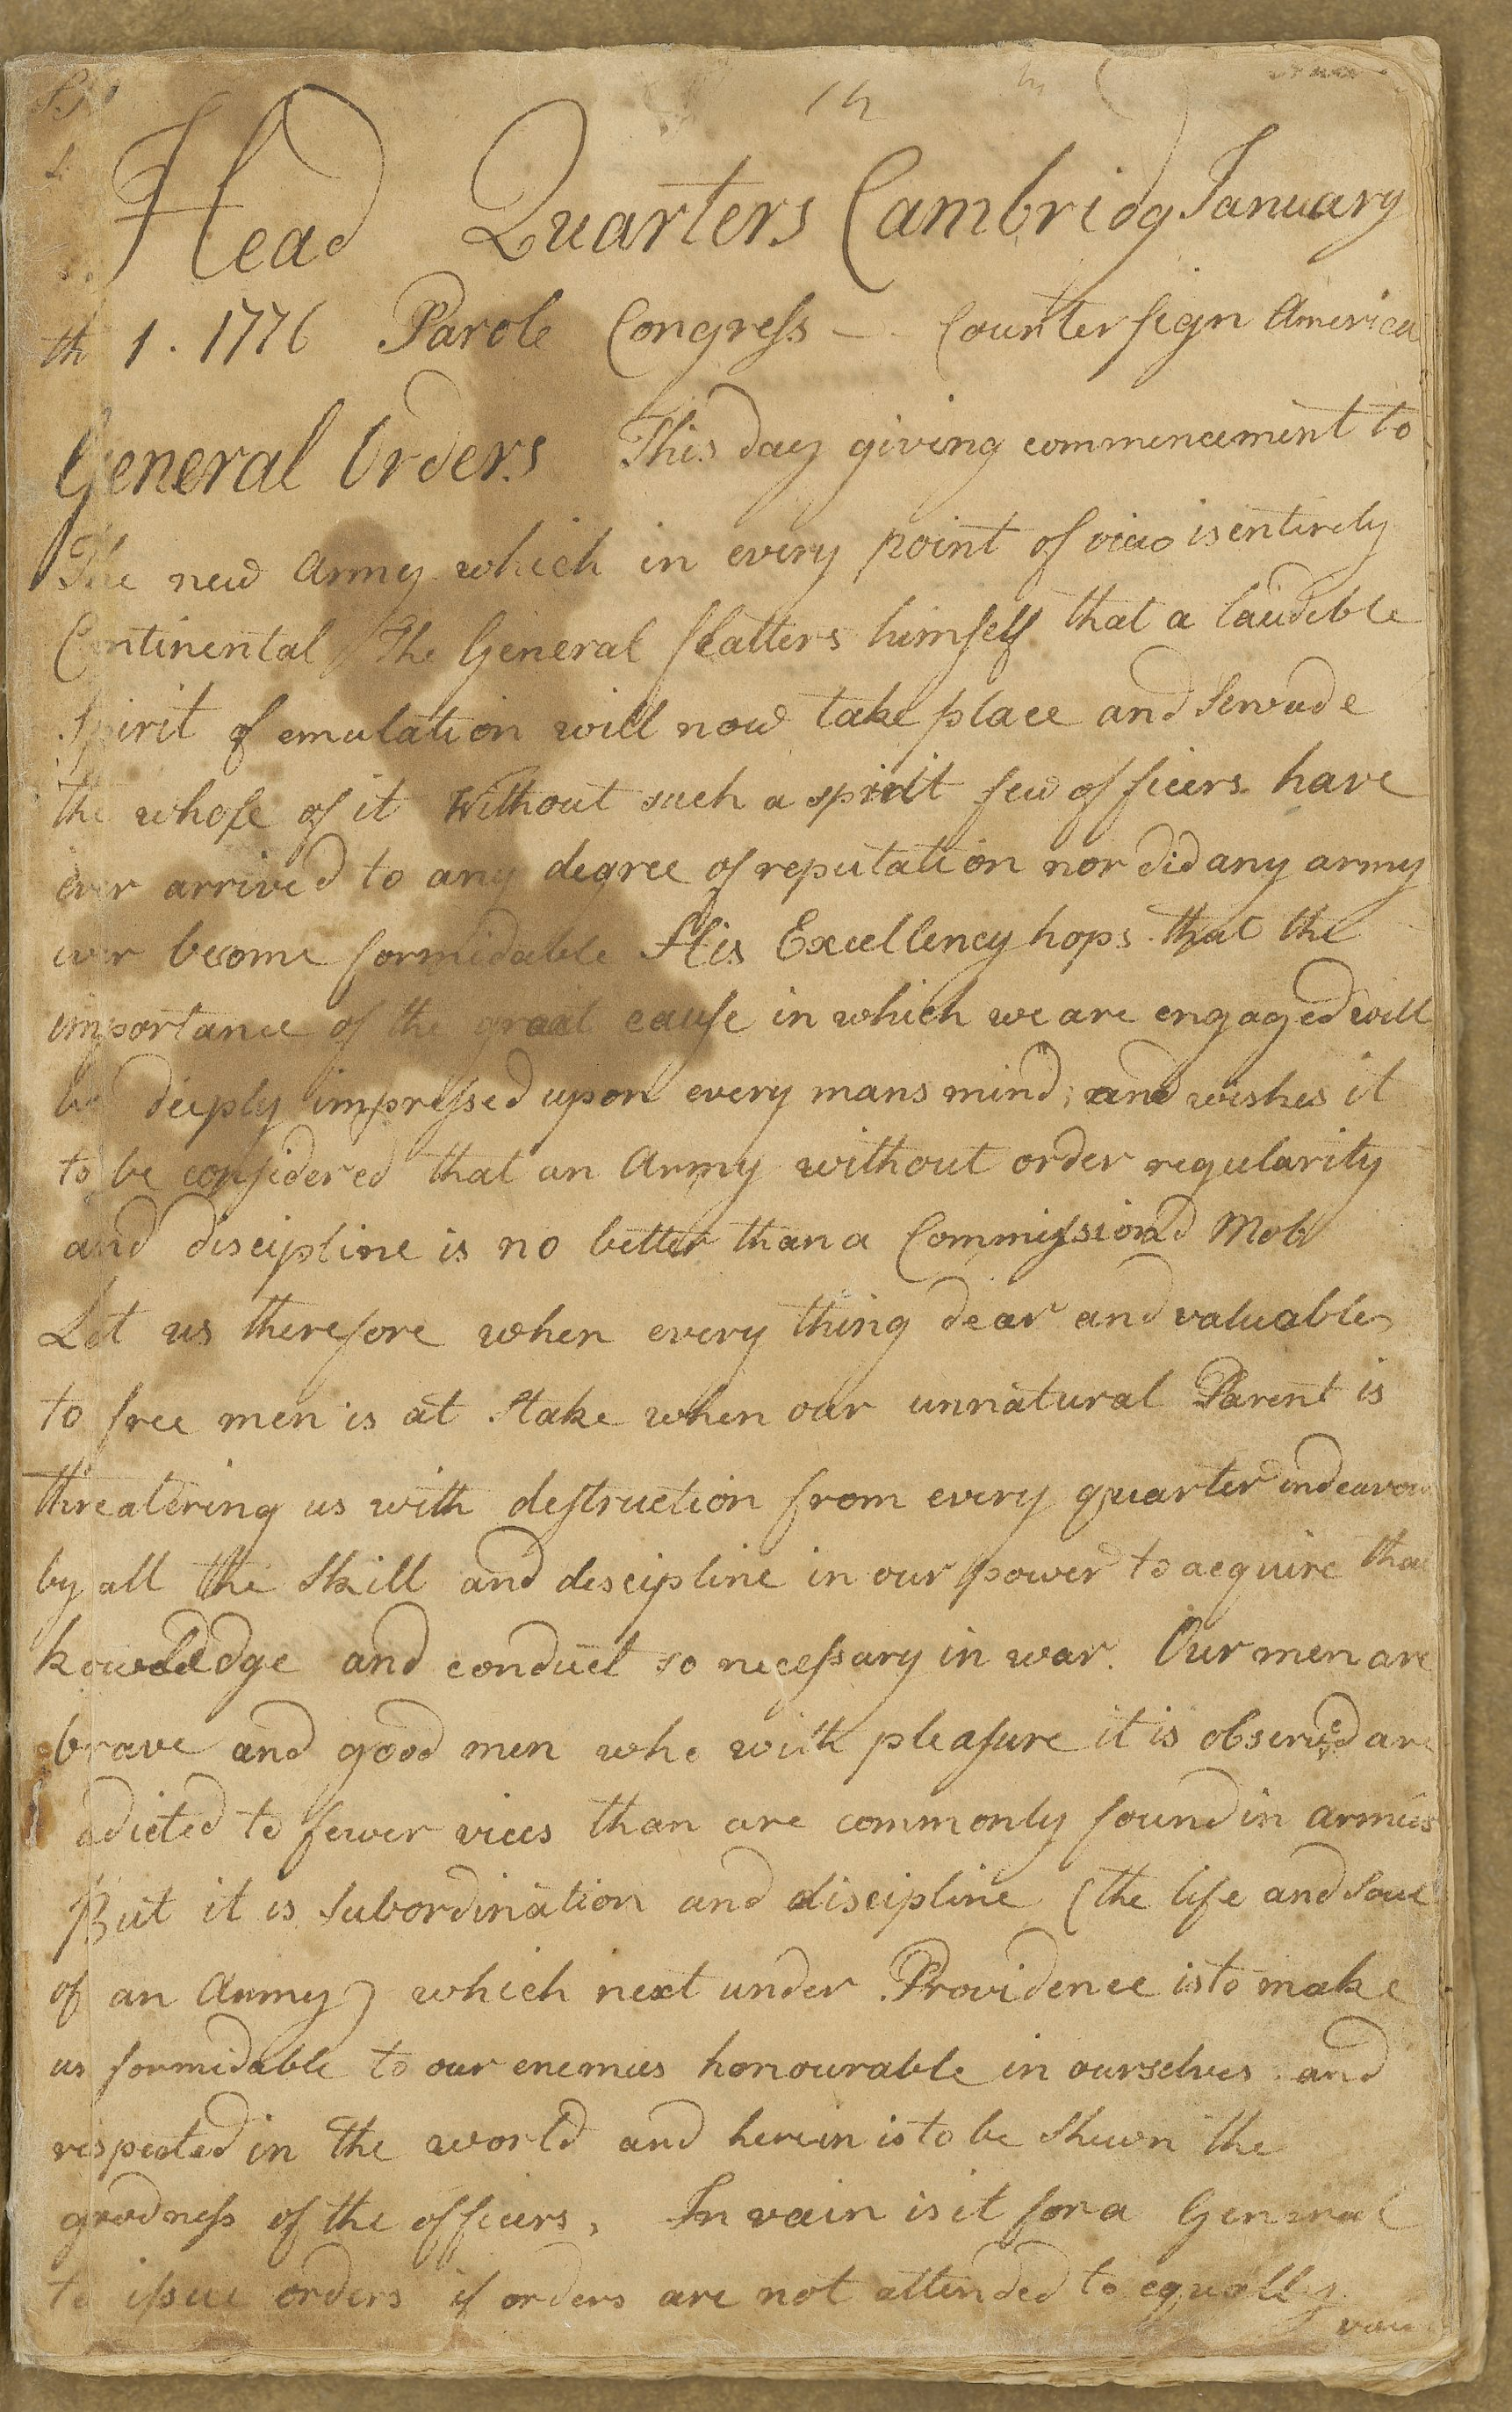 Orderly Book of the Continental Army Artillery Regiment kept by Gershom Foster, January 1 – February 24, 1776